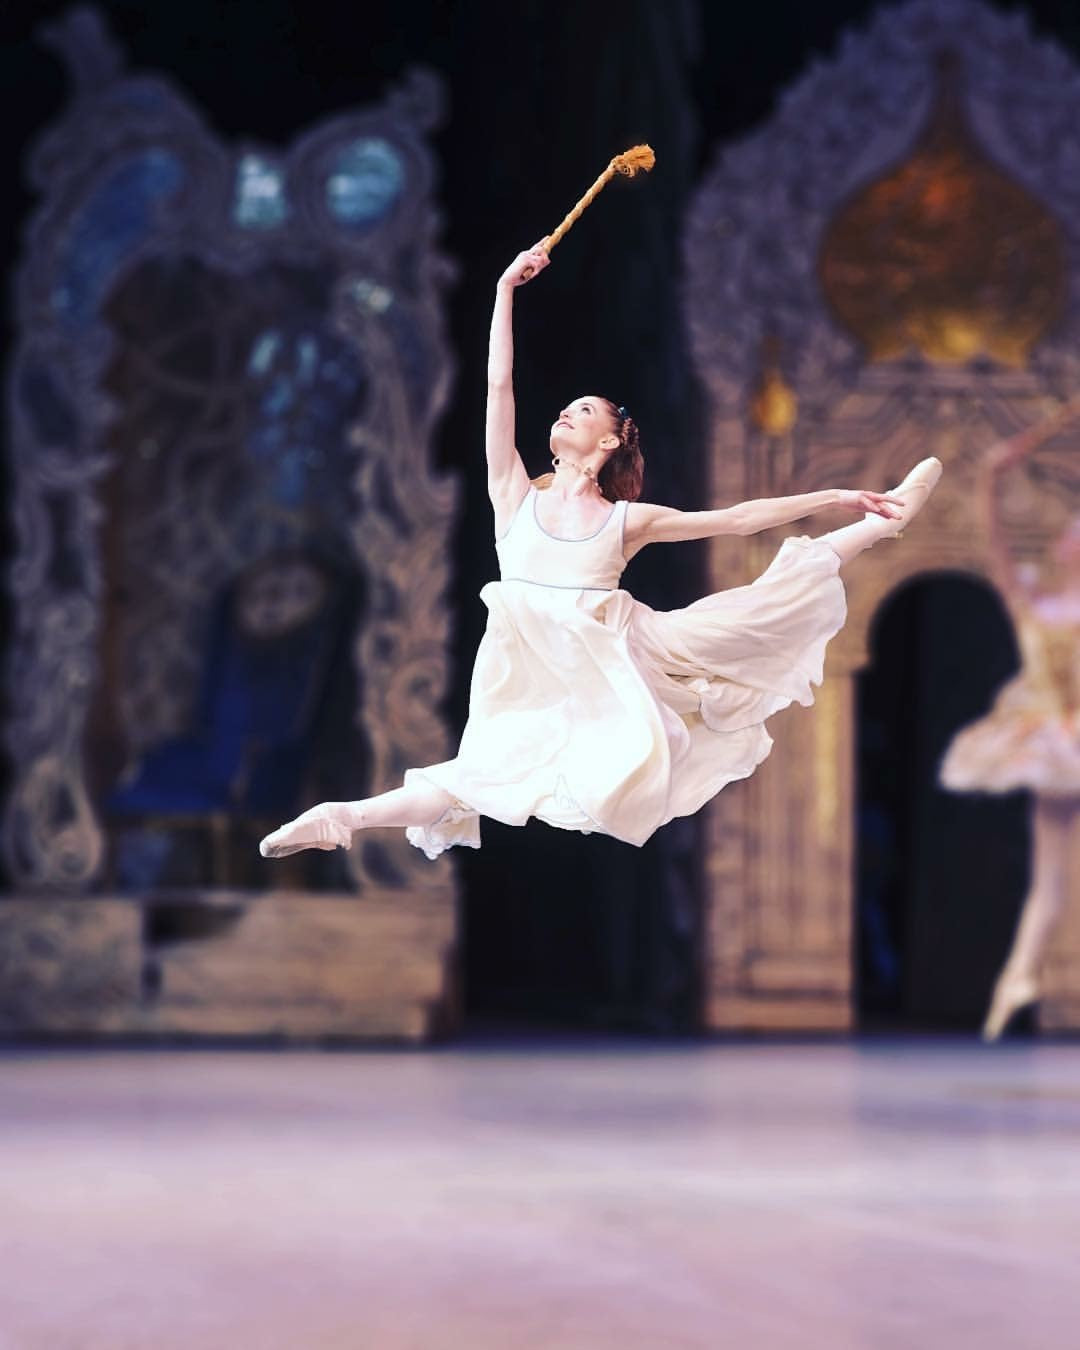 Ballerina Anna Rose O'Sullivan dancing in a live performance on stage